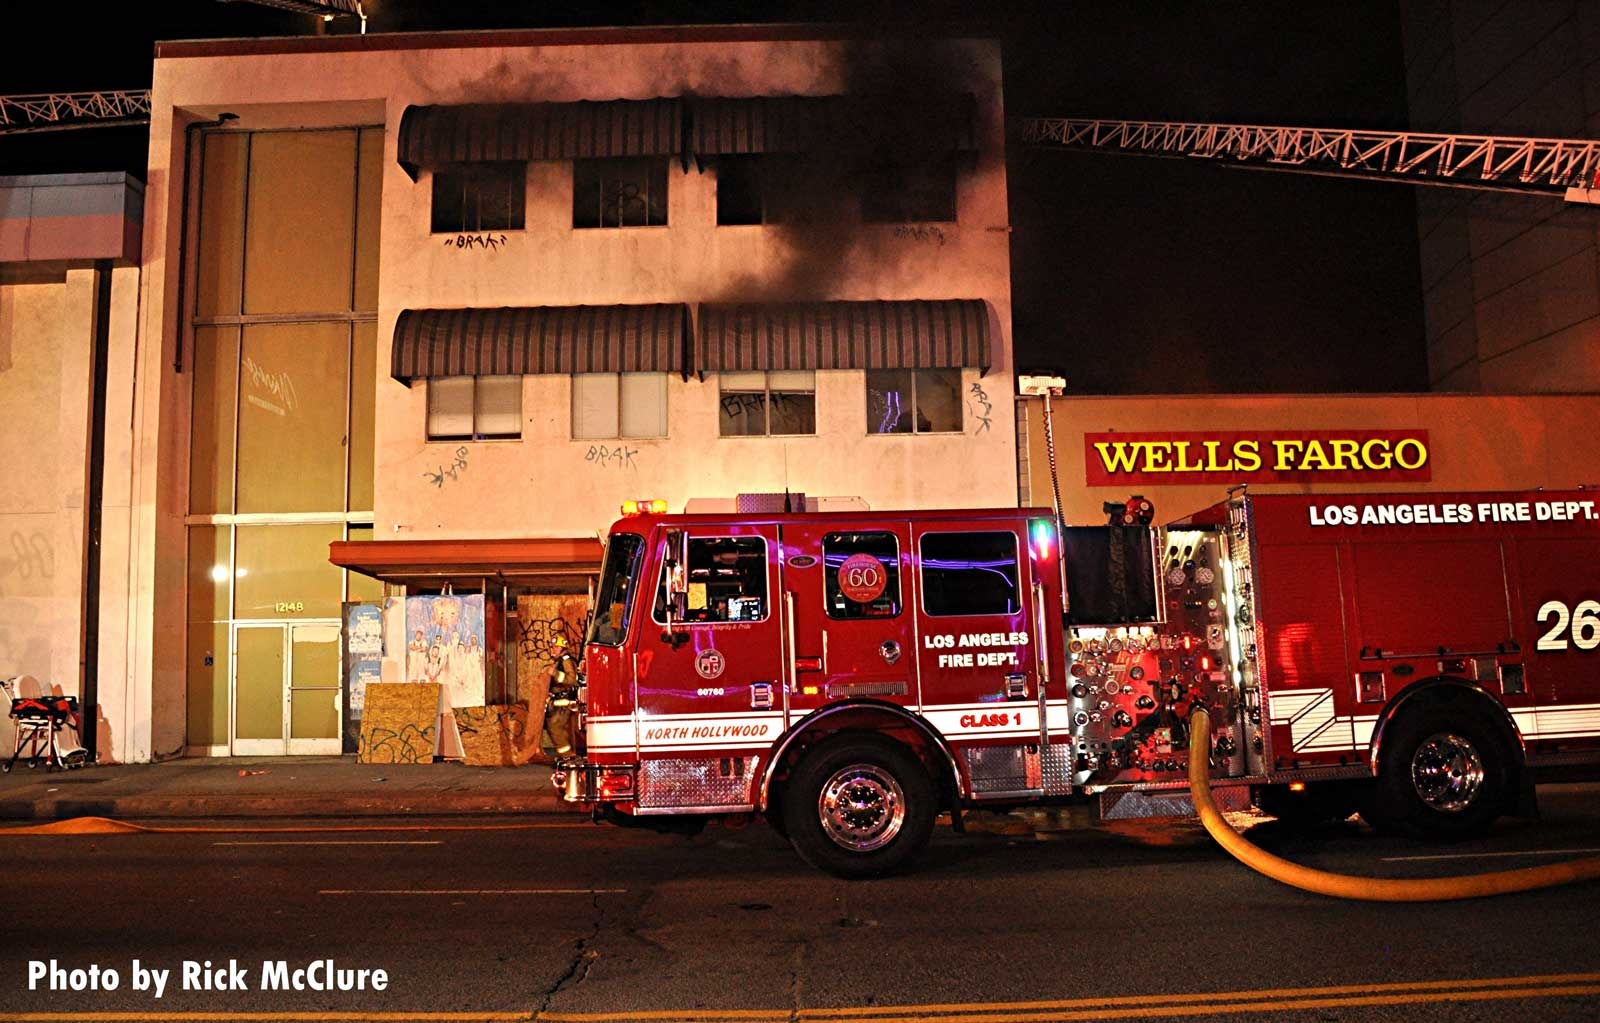 Los Angeles fire apparatus at commercial fire